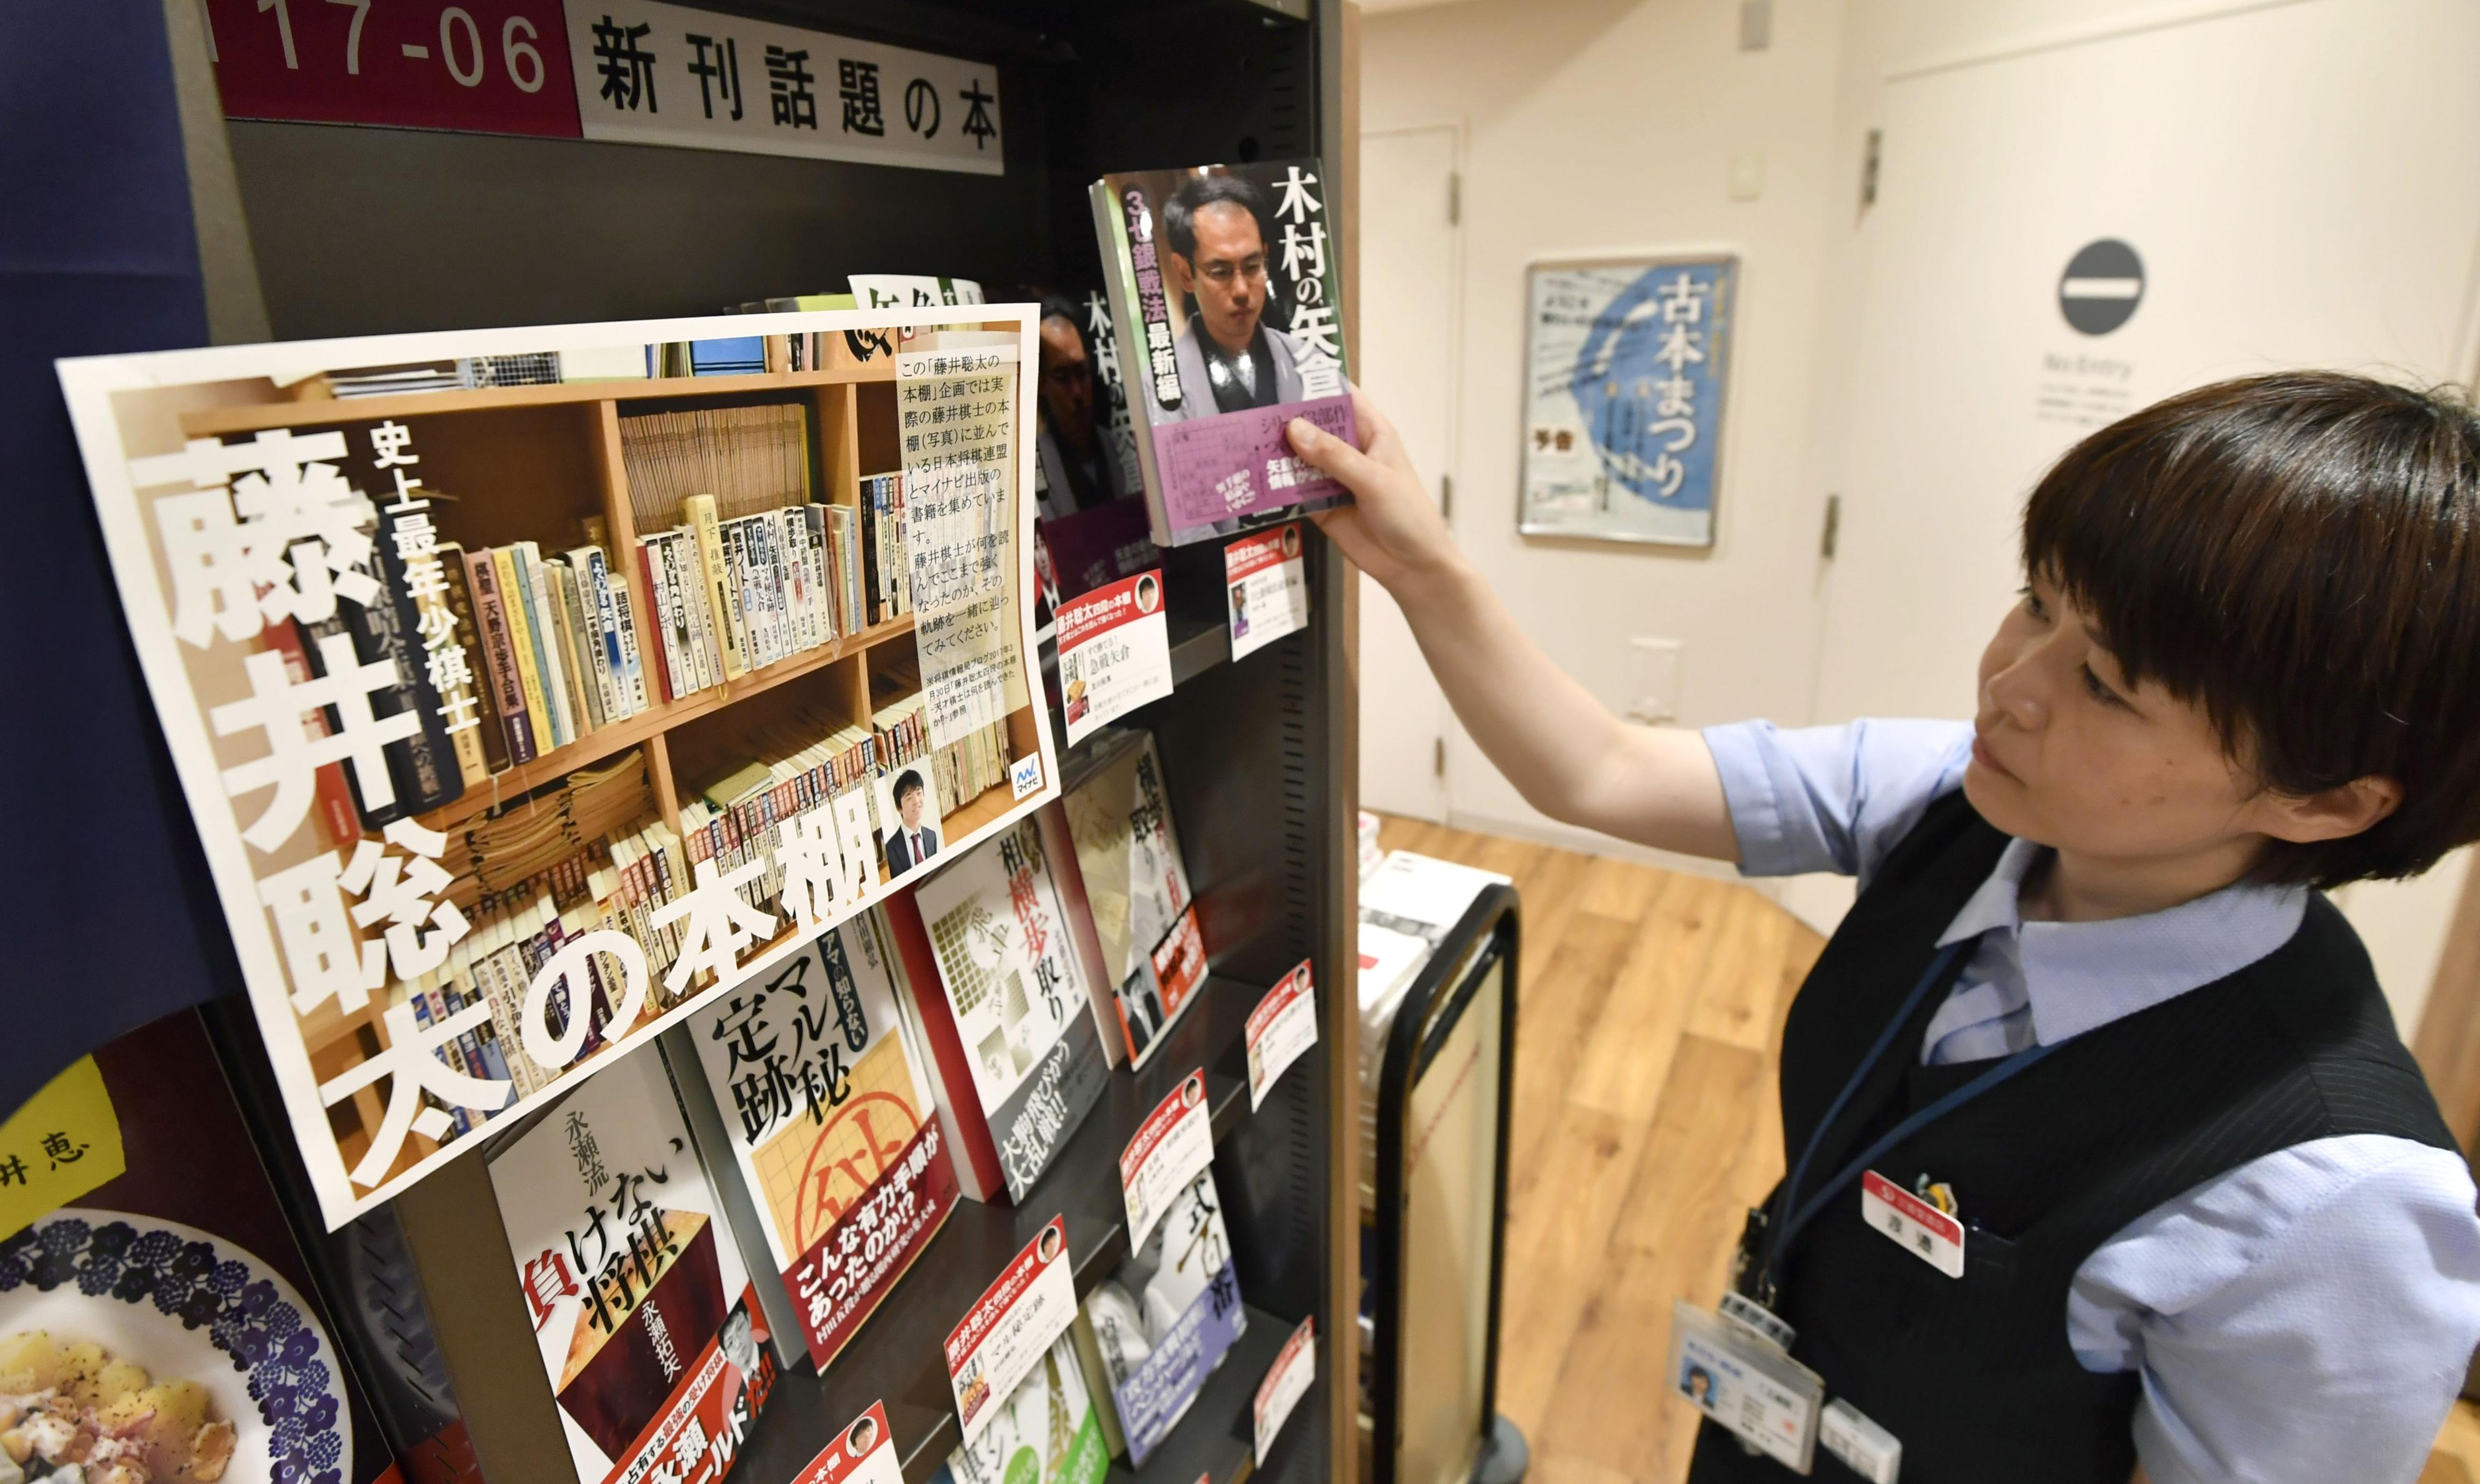 Shogi-related books selling well thanks to Fujii's success